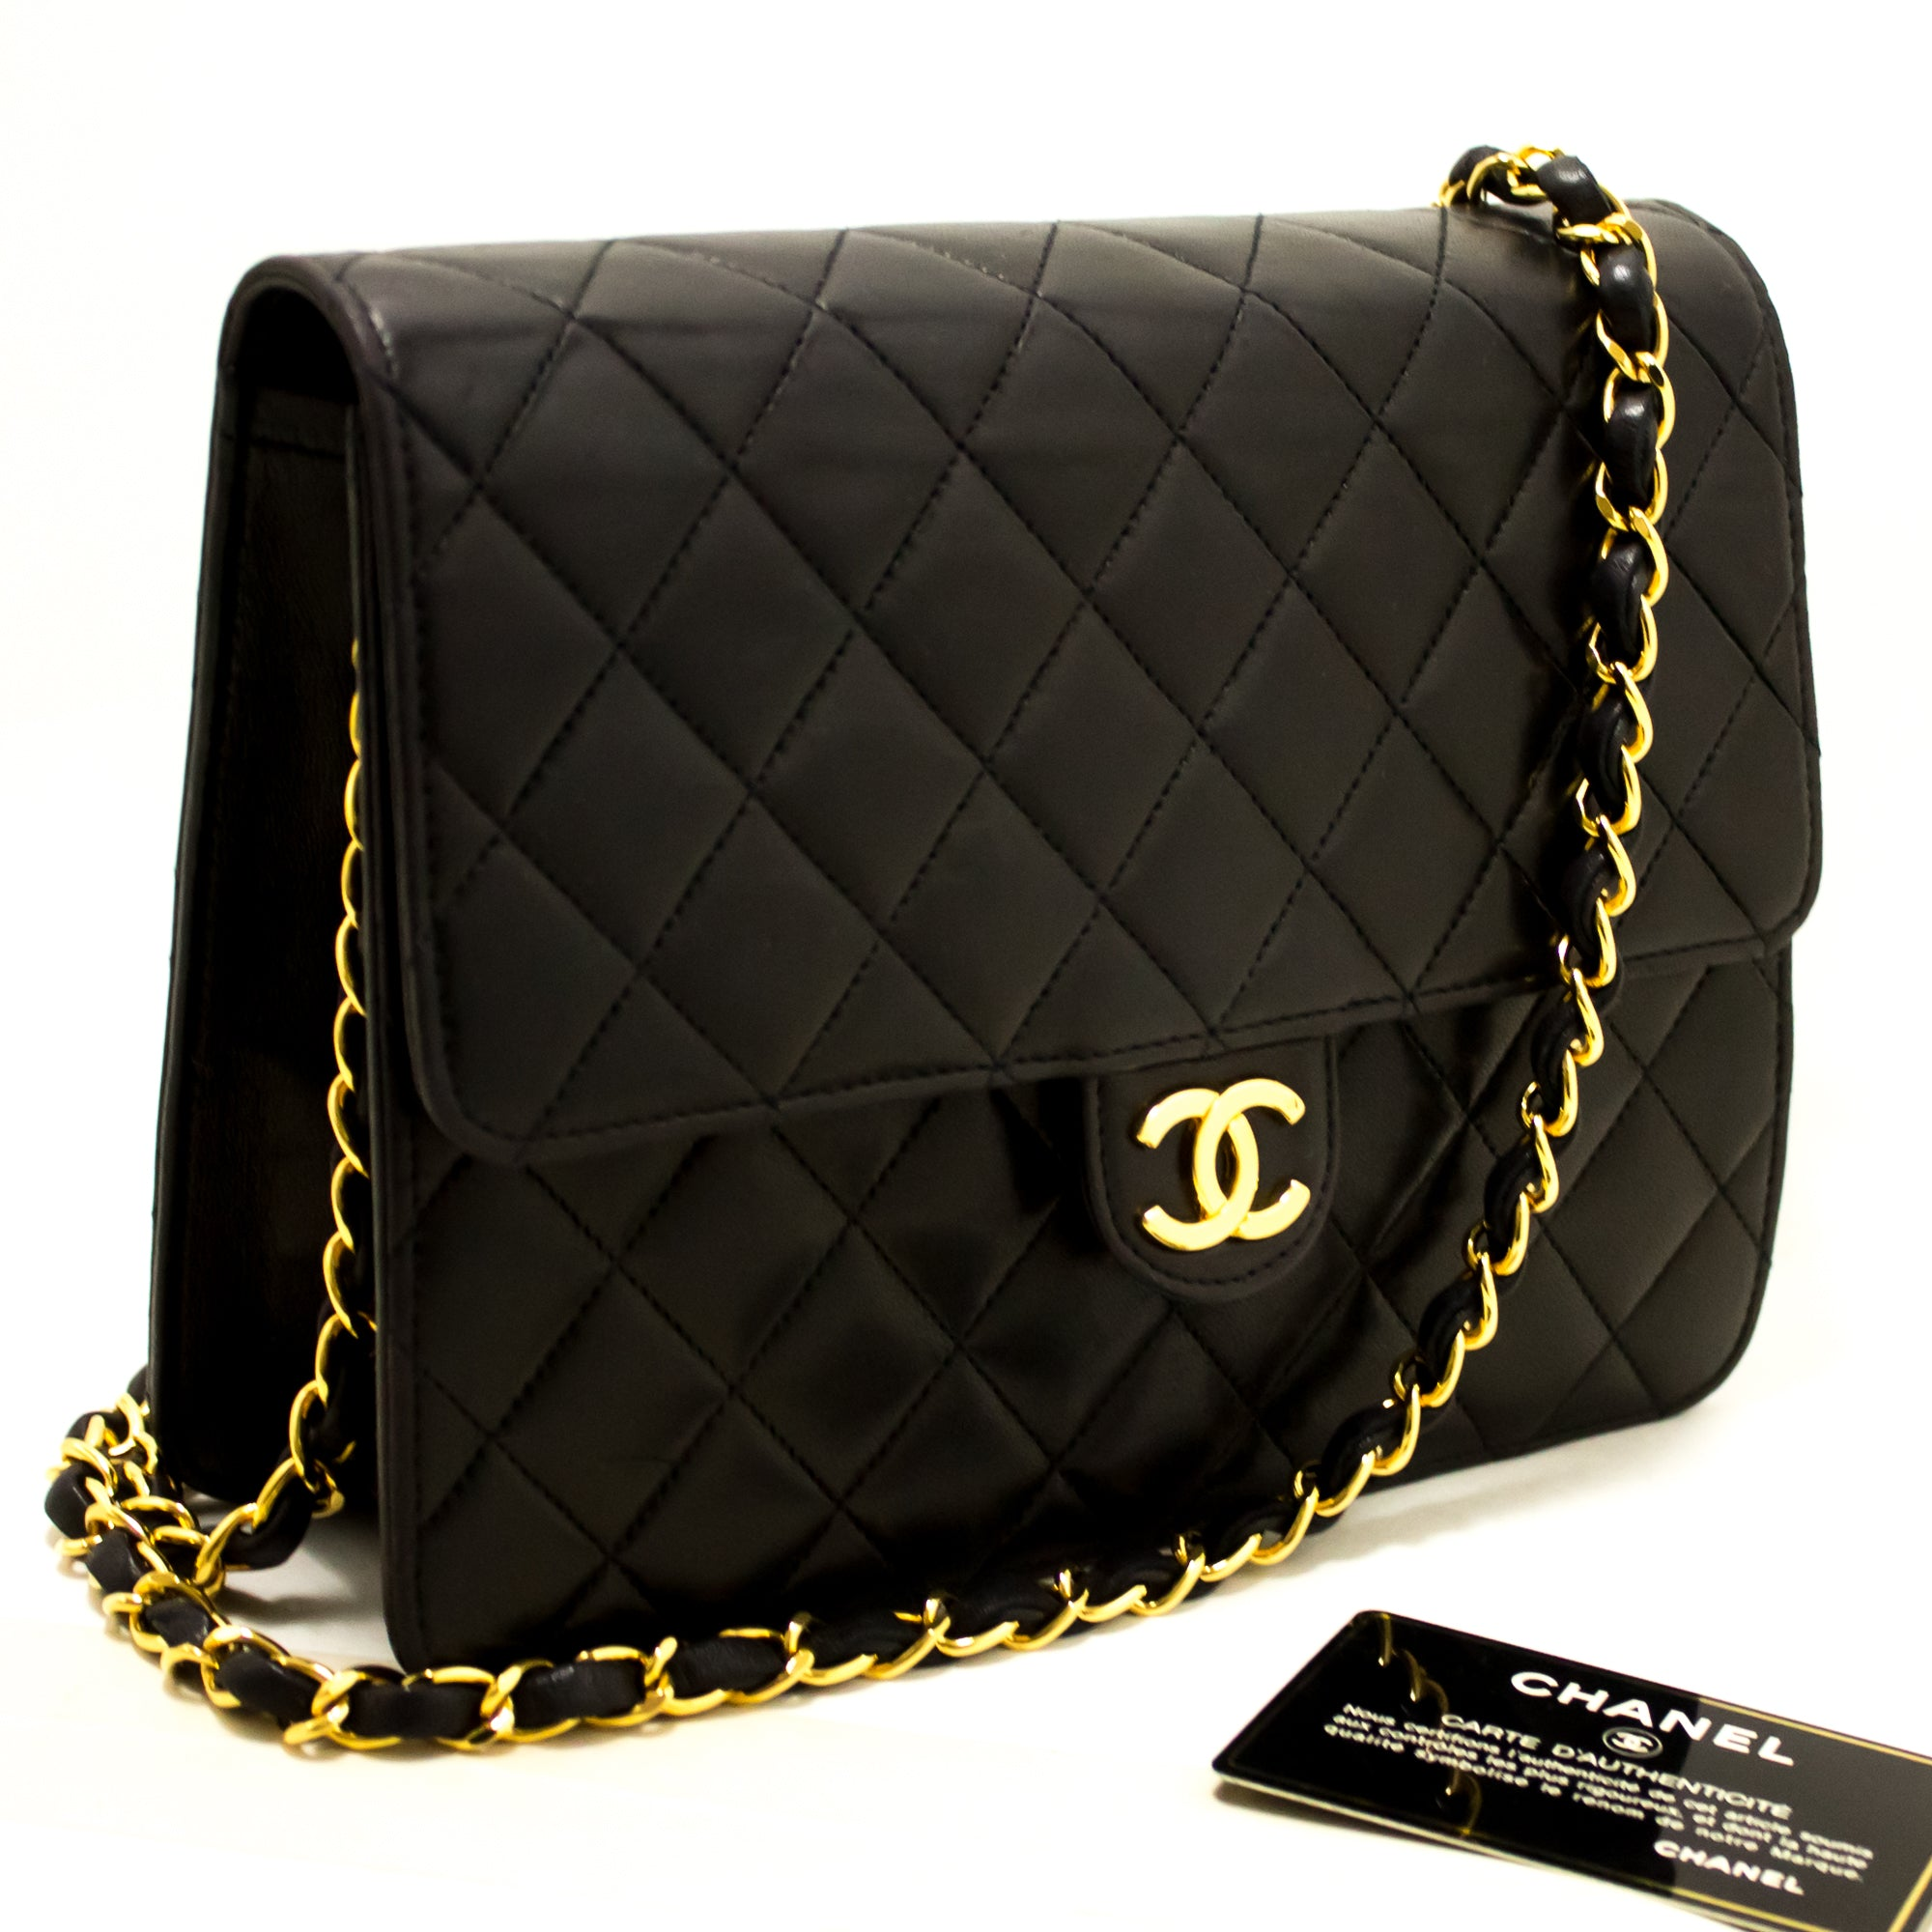 503697c9c6b533 ... CHANEL Small Chain Shoulder Bag Clutch Black Quilted Flap Lambskin  Q47-nel-hannari- ...